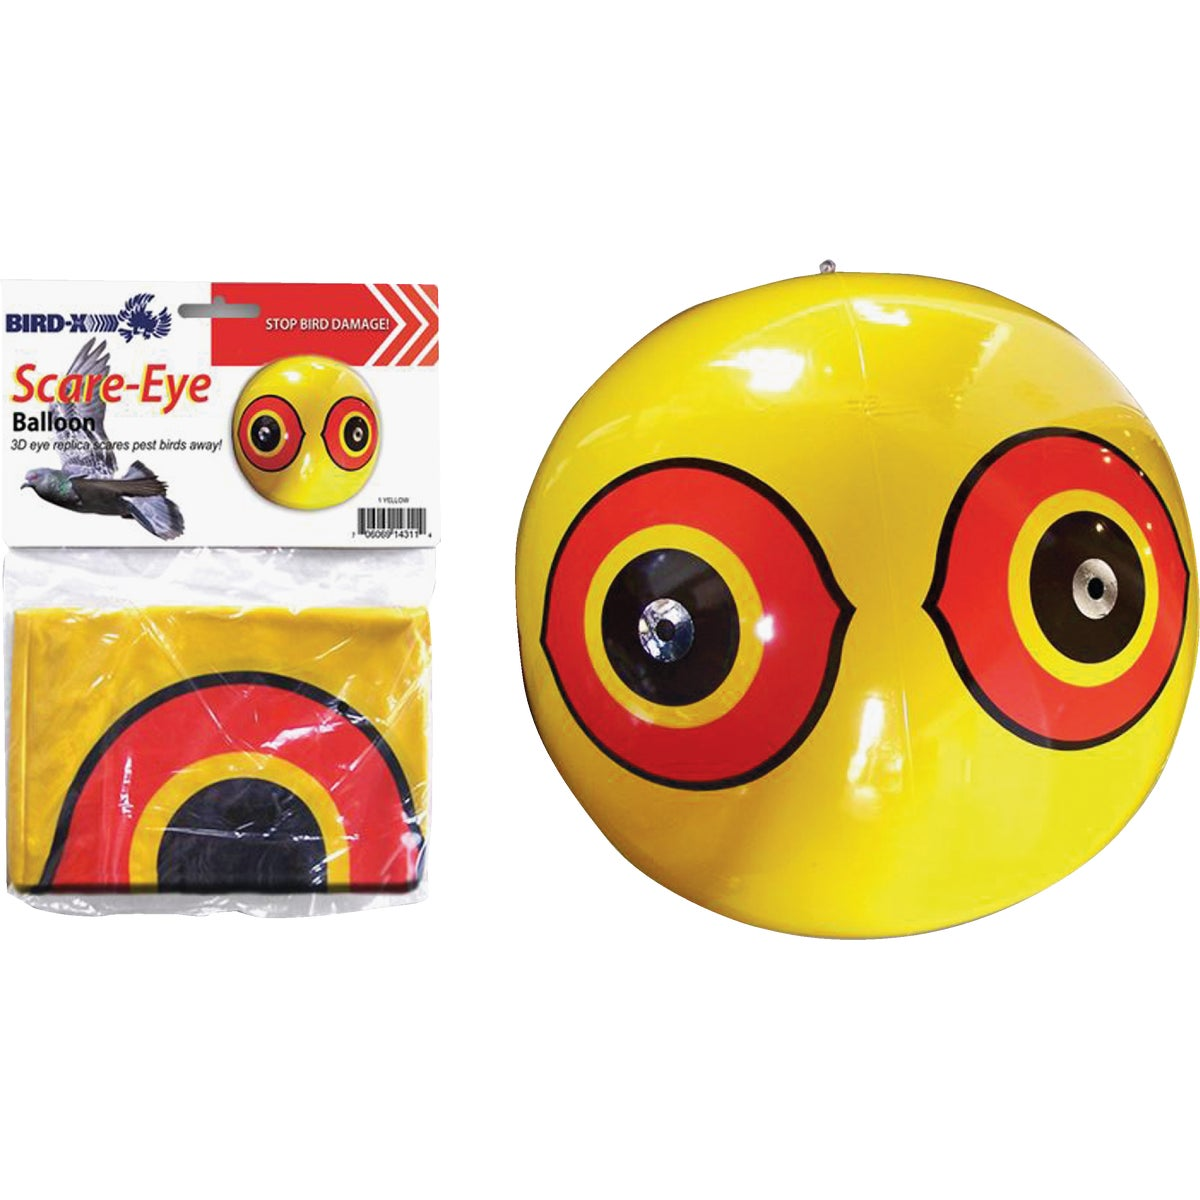 SCARE EYE BALLOON - SE-Y by Bird X Inc